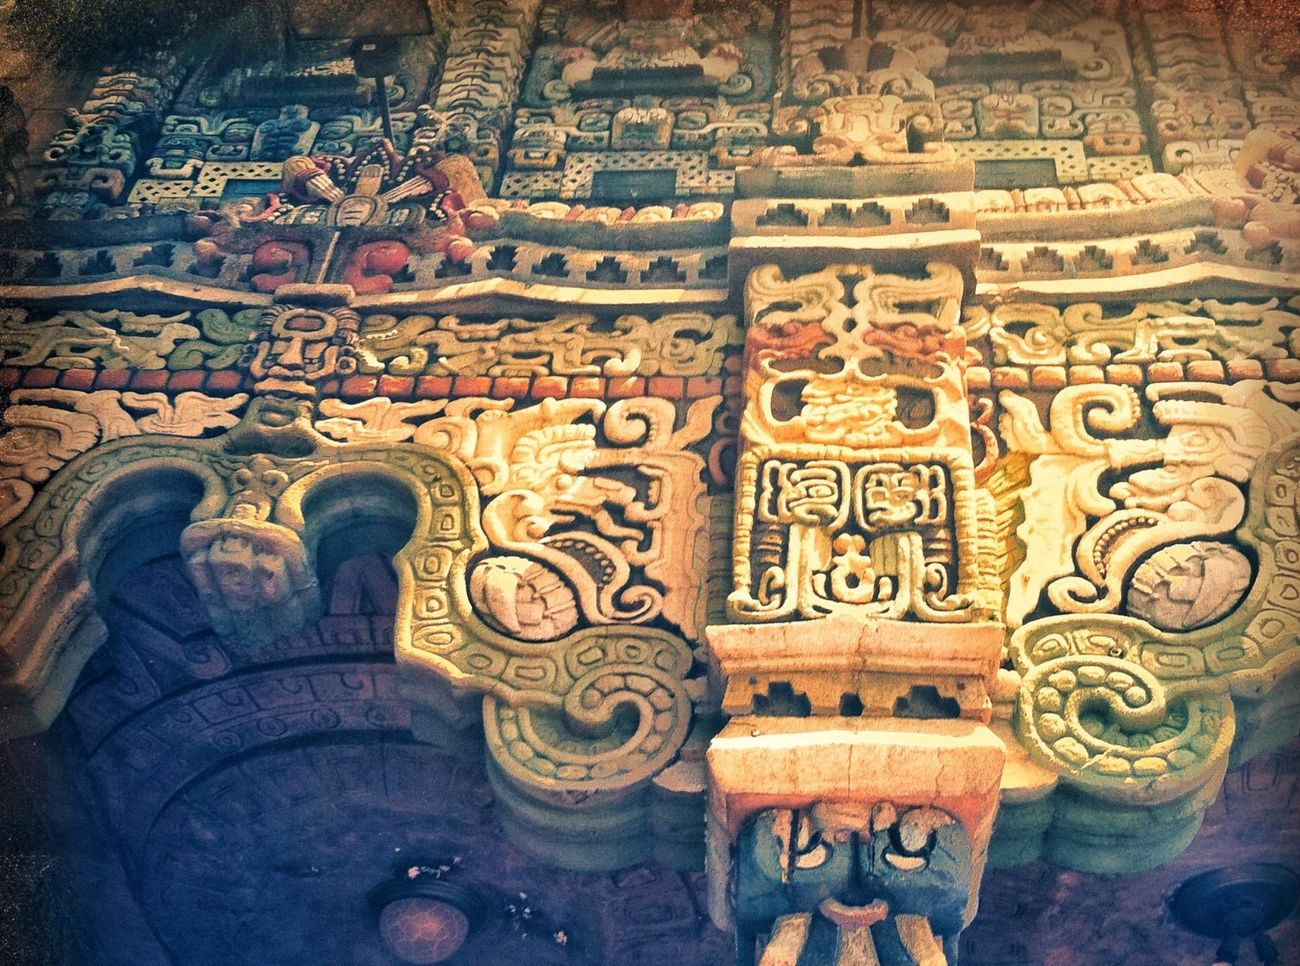 Theater Marquee Ornate Carving Mexican Mayan Southwest  Maya Mayan Ruins Mayanculture California